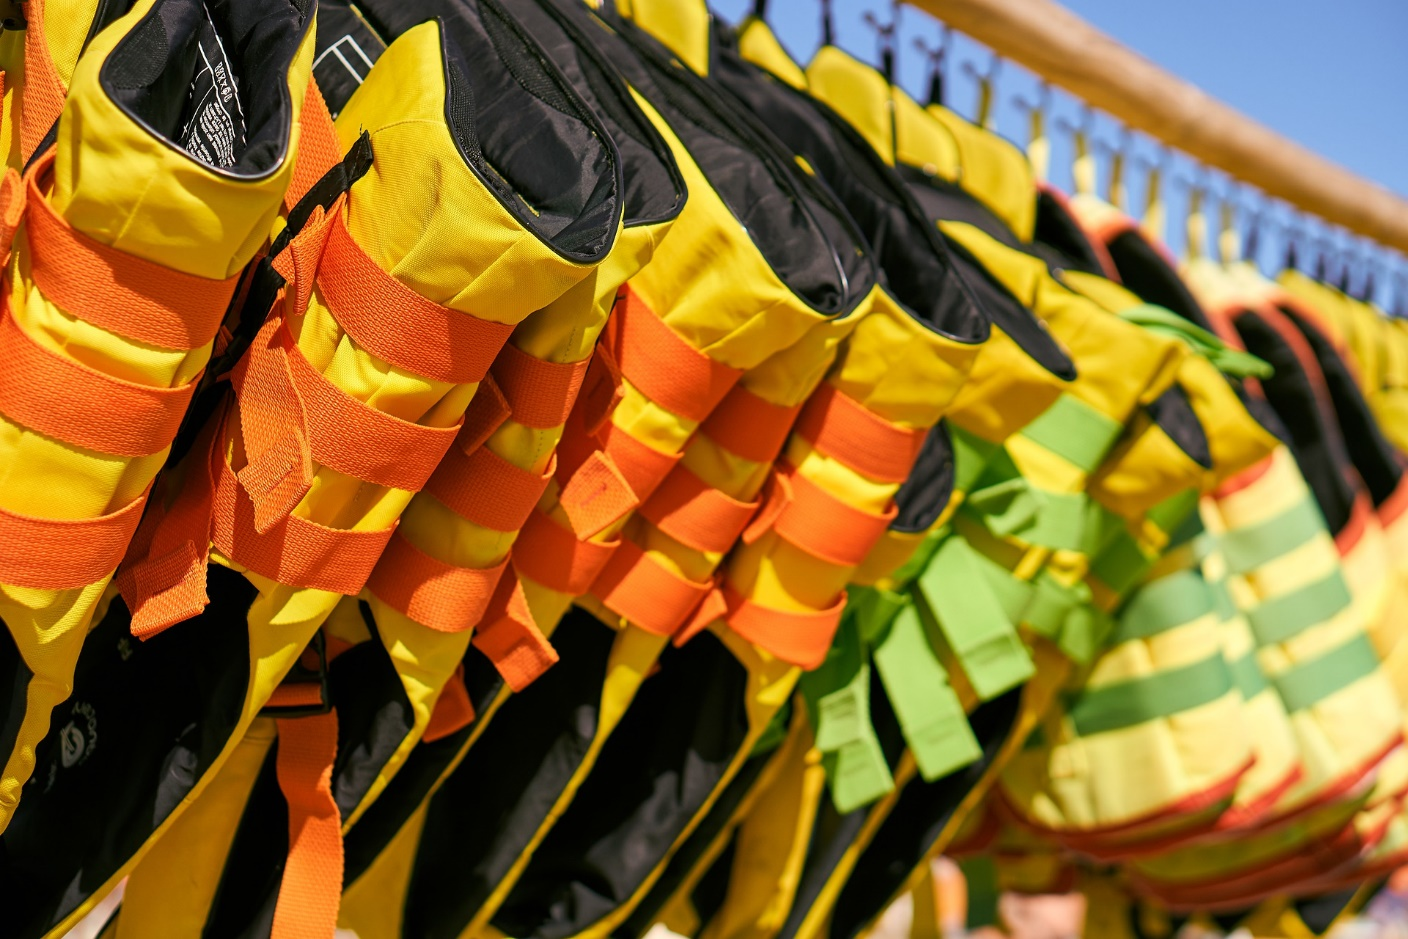 Lifejackets used in watersports safety